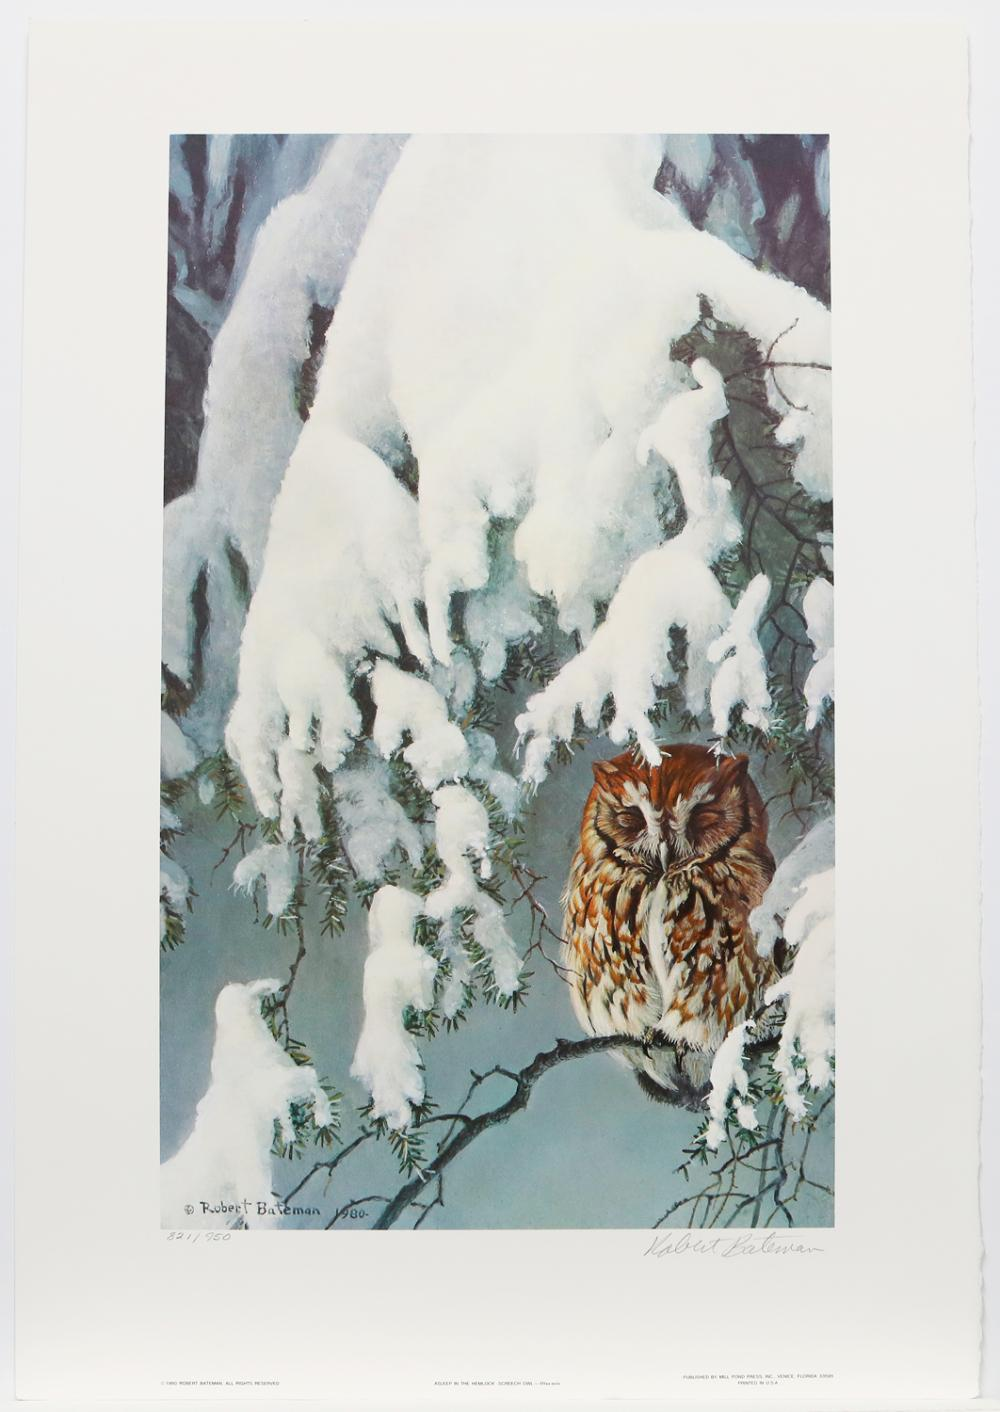 """Robert Bateman's """"Asleep in The Hemlock - Screech Owl"""" Limited Edition Print Signed and Numbered"""